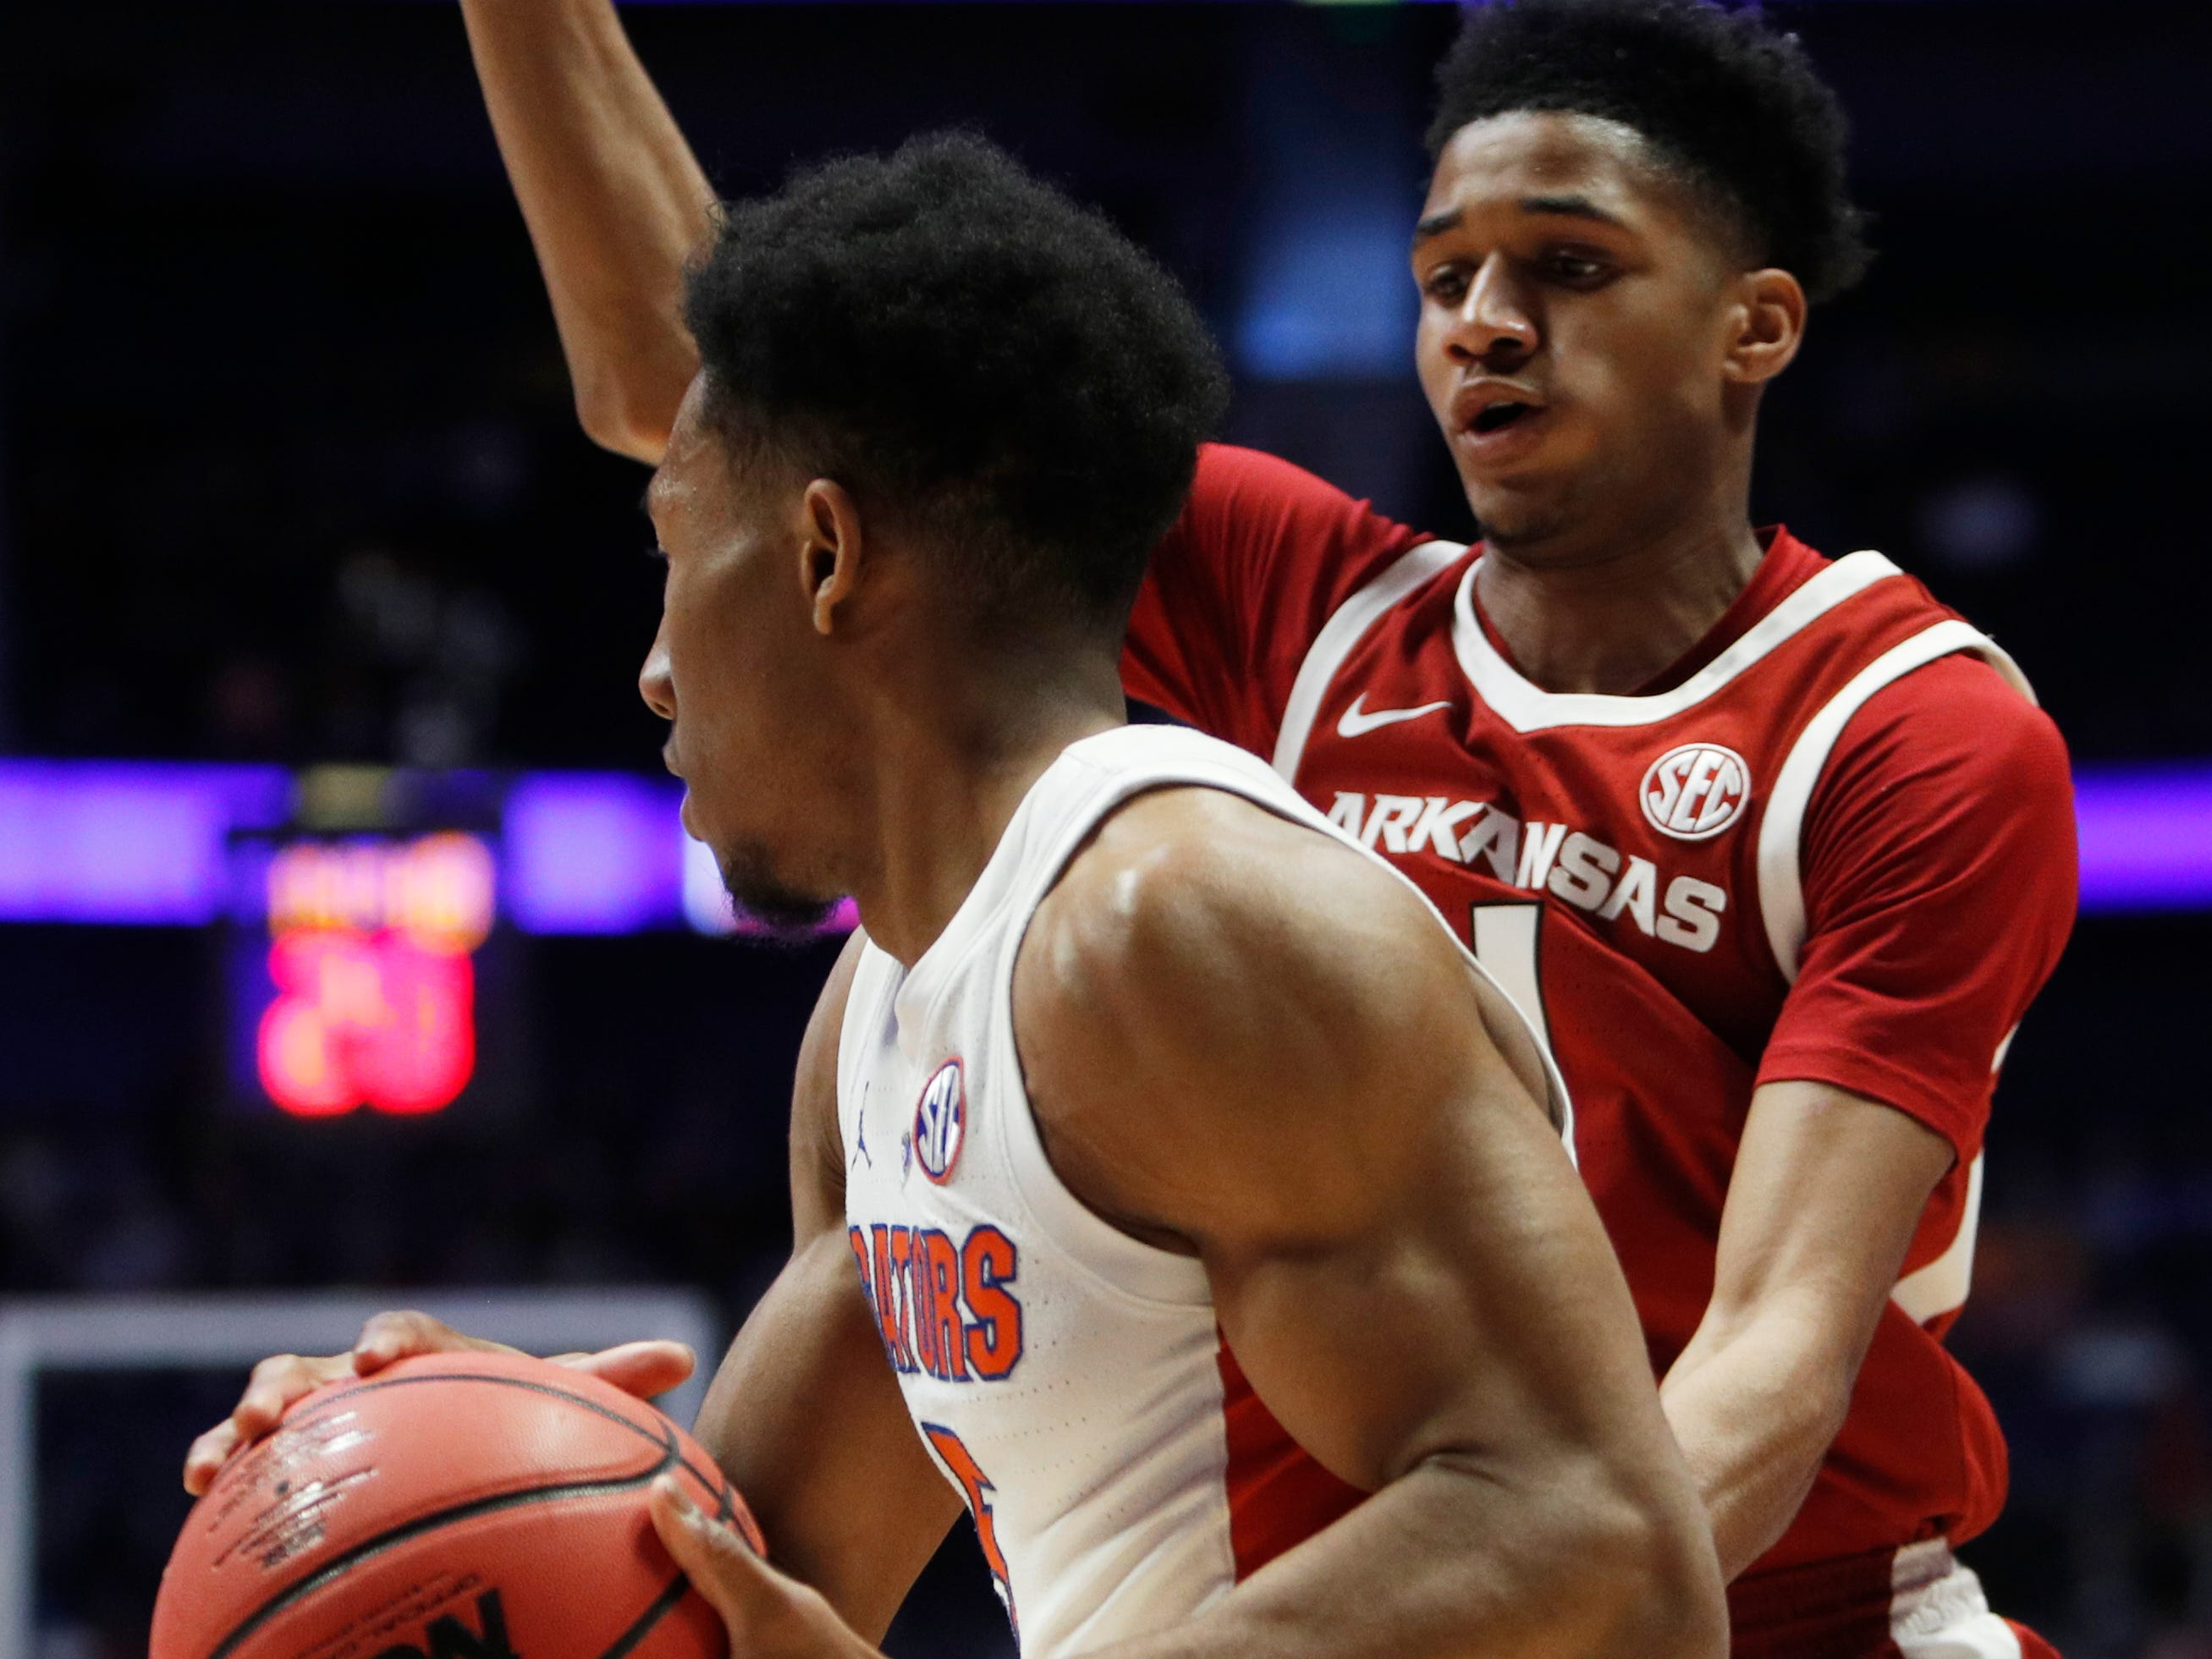 Florida guard KeVaughn Allen (5) tries to move the ball defended by Arkansas guard Isaiah Joe (1) during the first half of the SEC Men's Basketball Tournament game at Bridgestone Arena in Nashville, Tenn., Thursday, March 14, 2019.